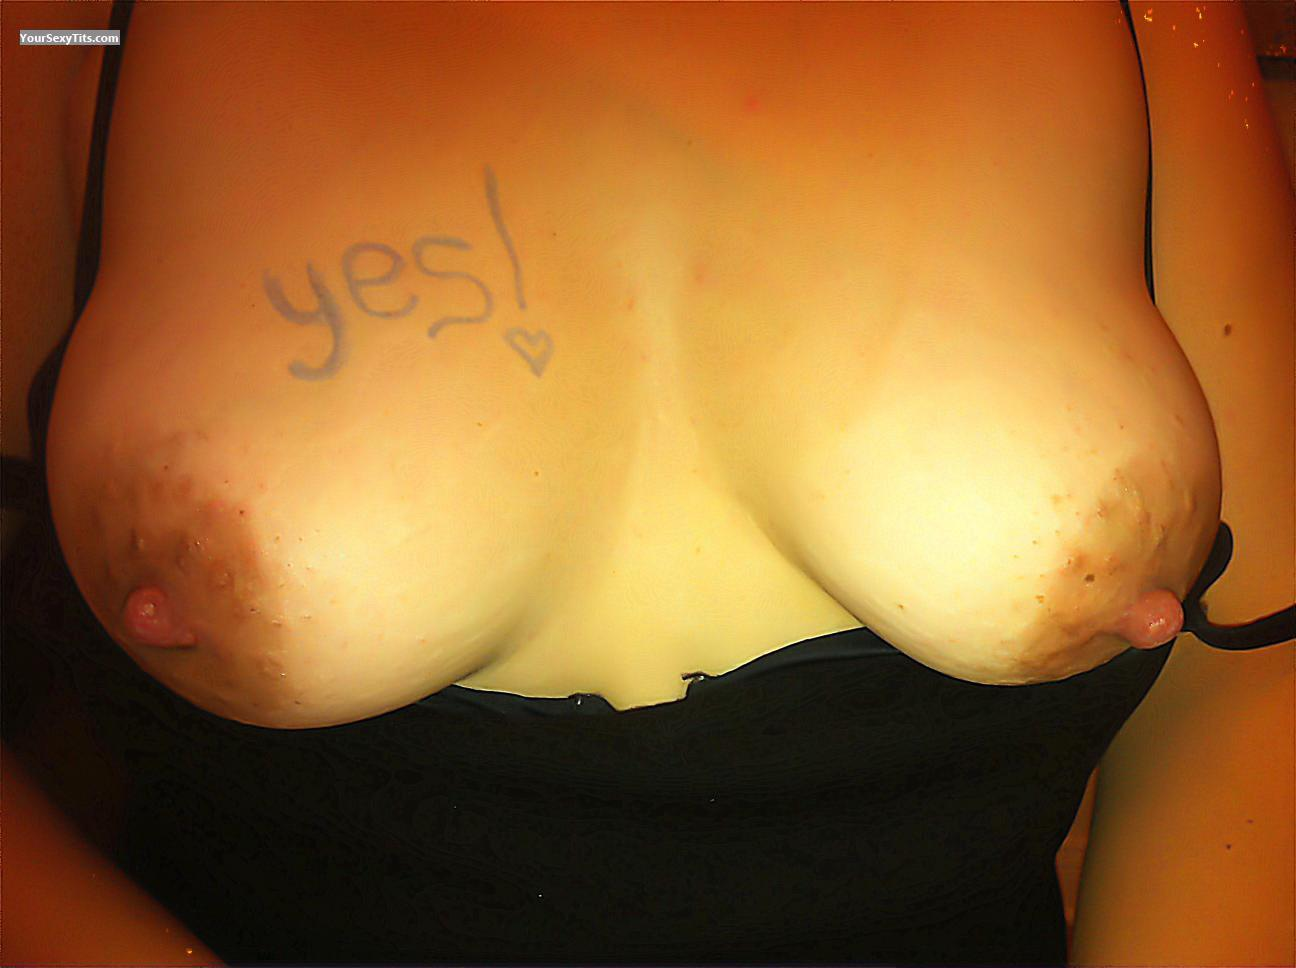 Tit Flash: My Medium Tits (Selfie) - Anne5 from Canada